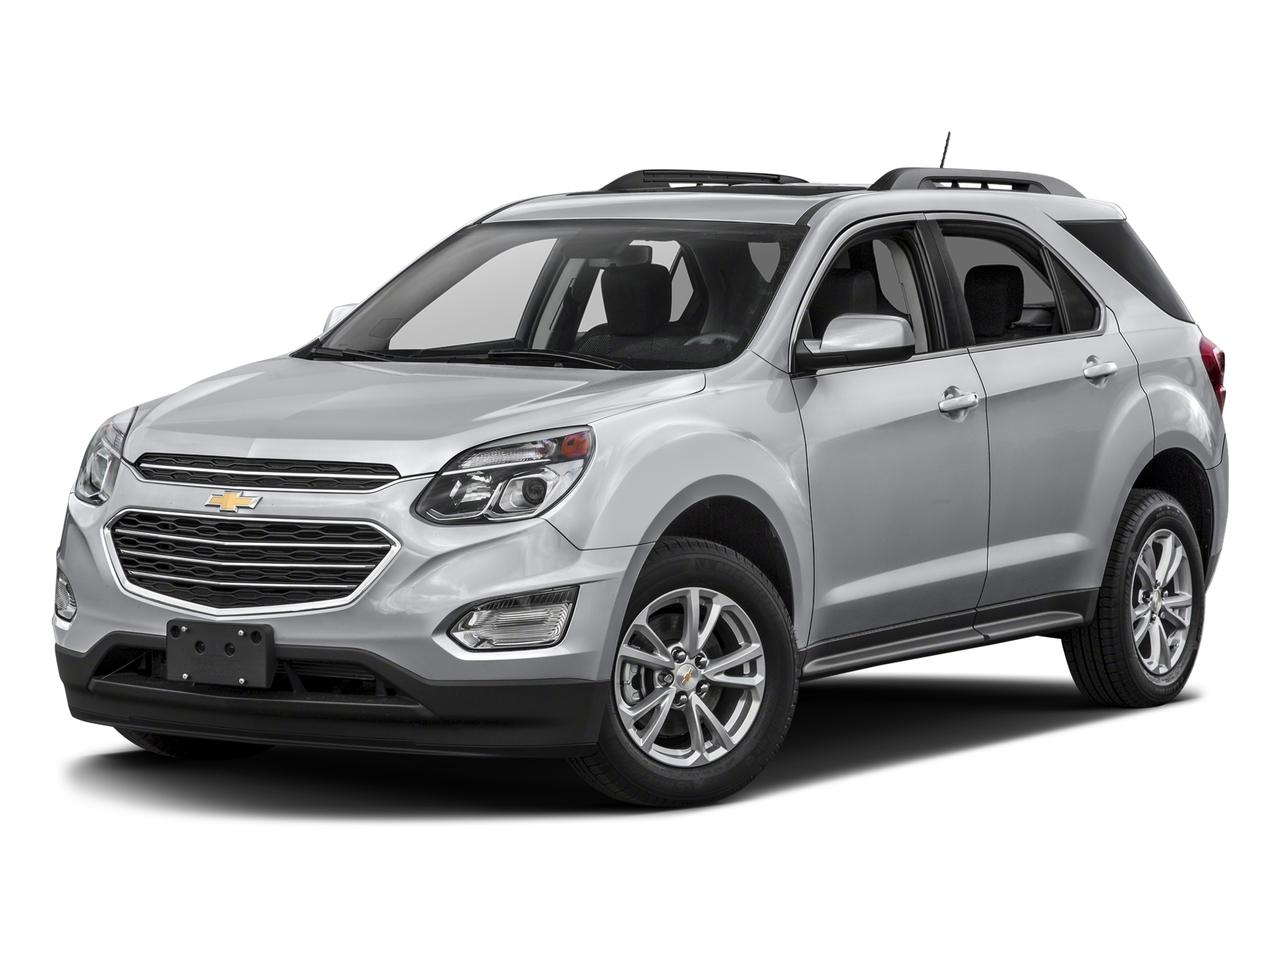 2017 Chevrolet Equinox Vehicle Photo in VINCENNES, IN 47591-5519